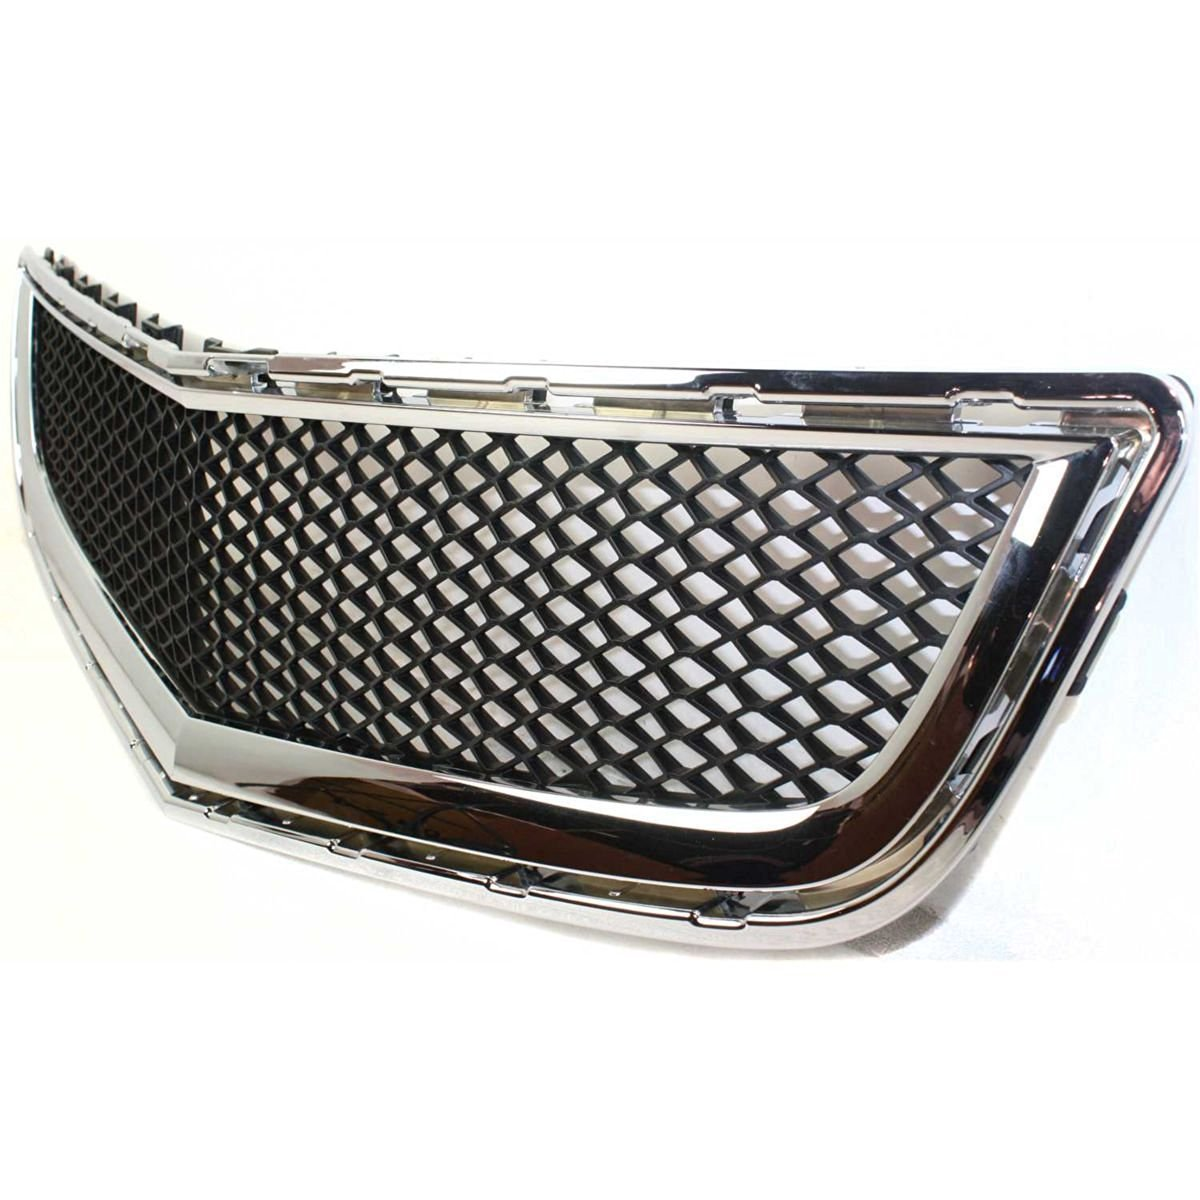 Diften 102-A4964-X01 - New Grille Assembly Grill Chrome shell black insert Traverse GM1036120 20756061